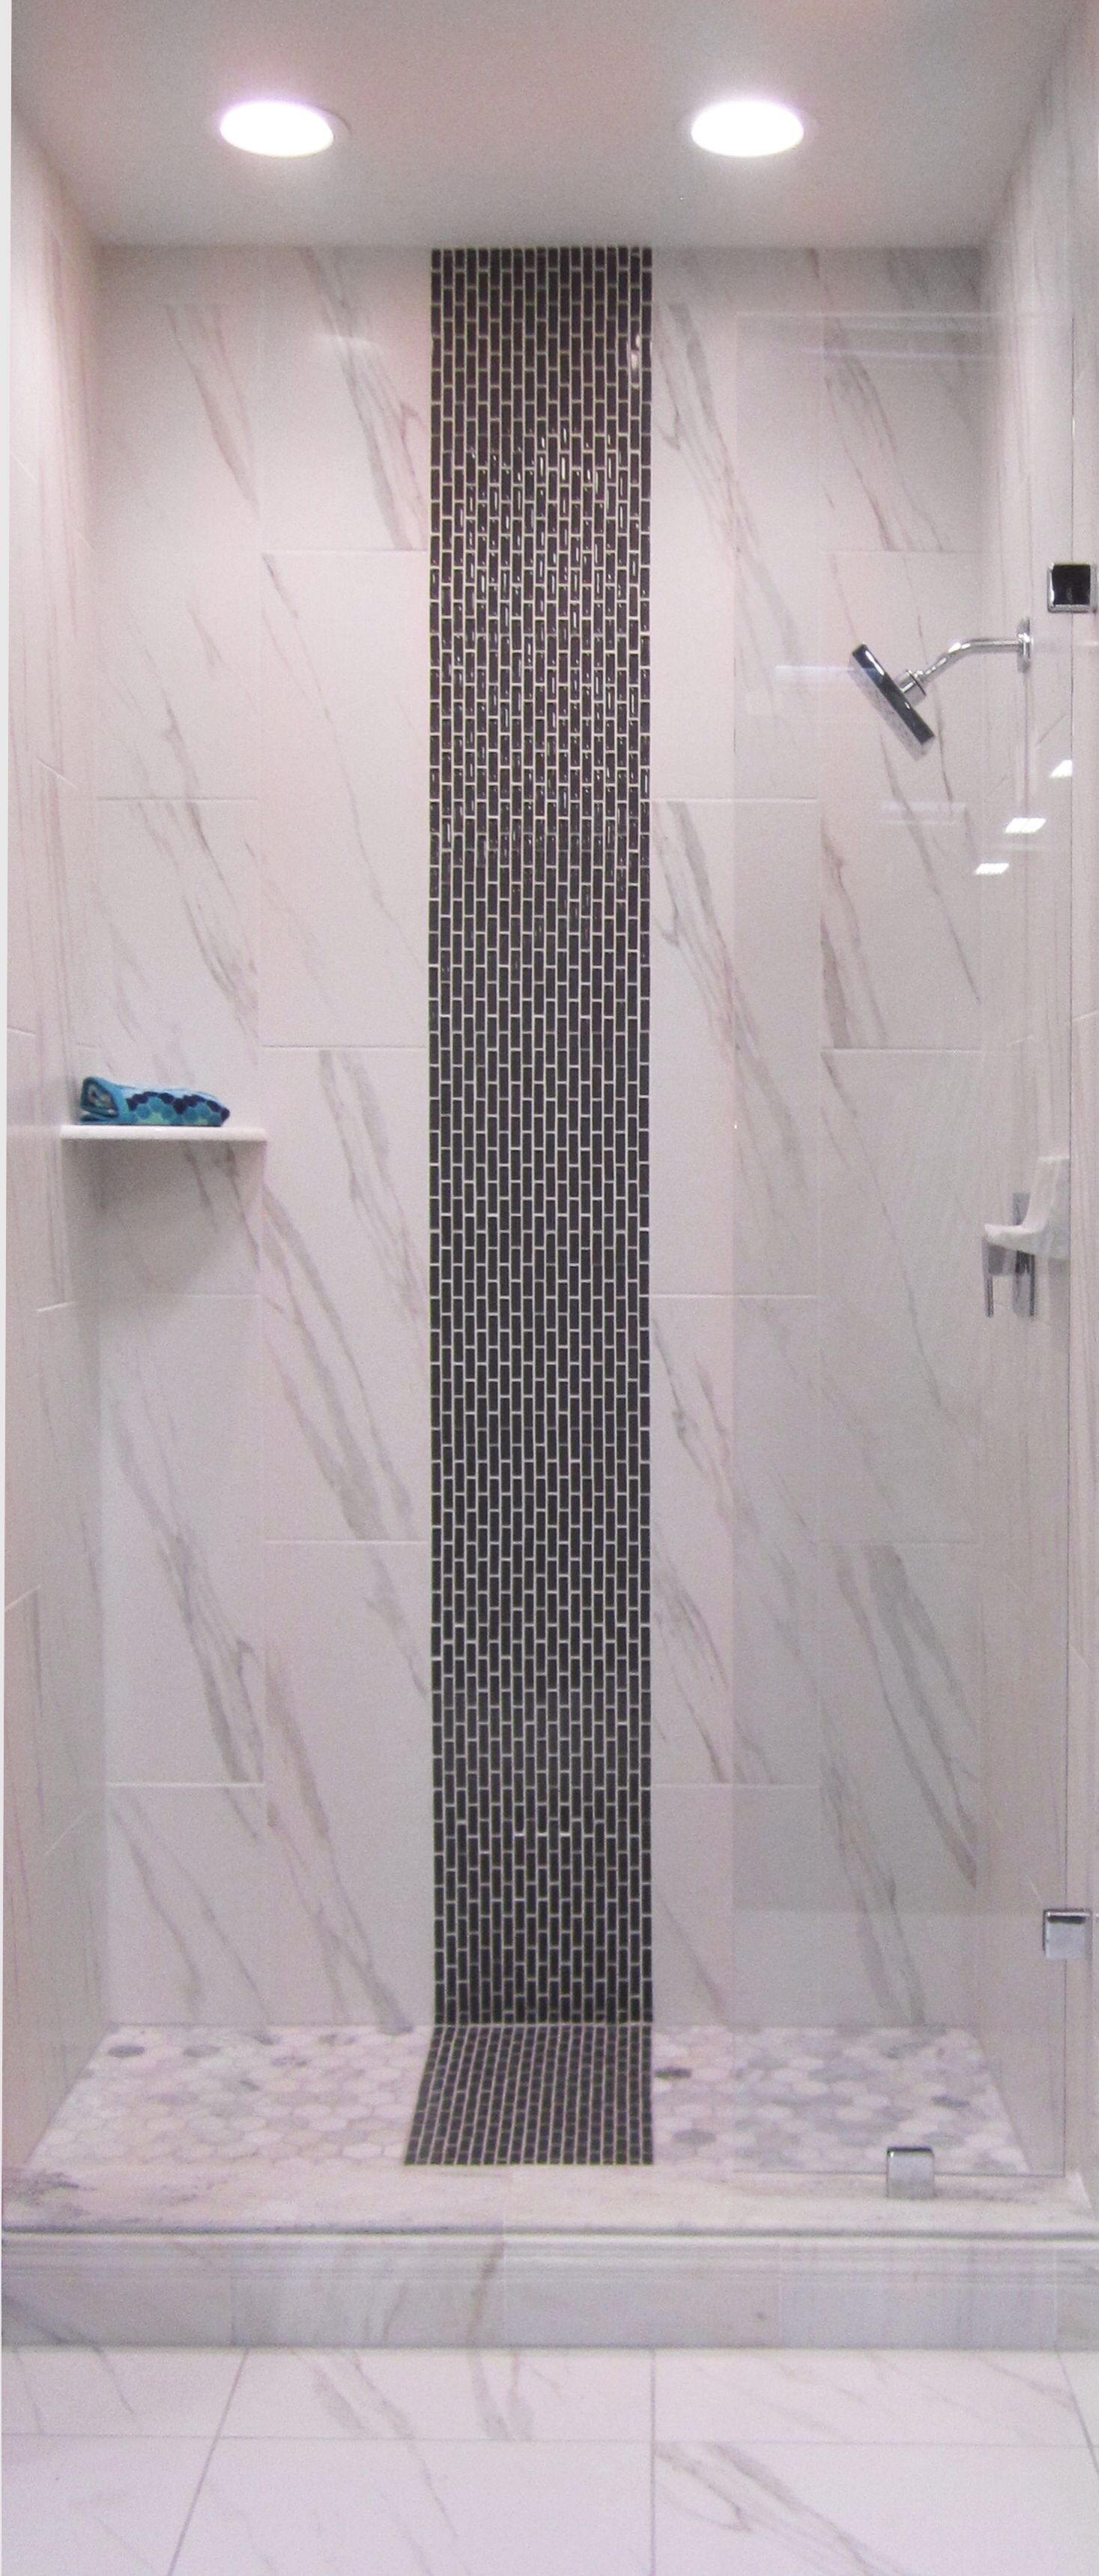 A Glass Strip Mosaic In The Shower. #thetileshop